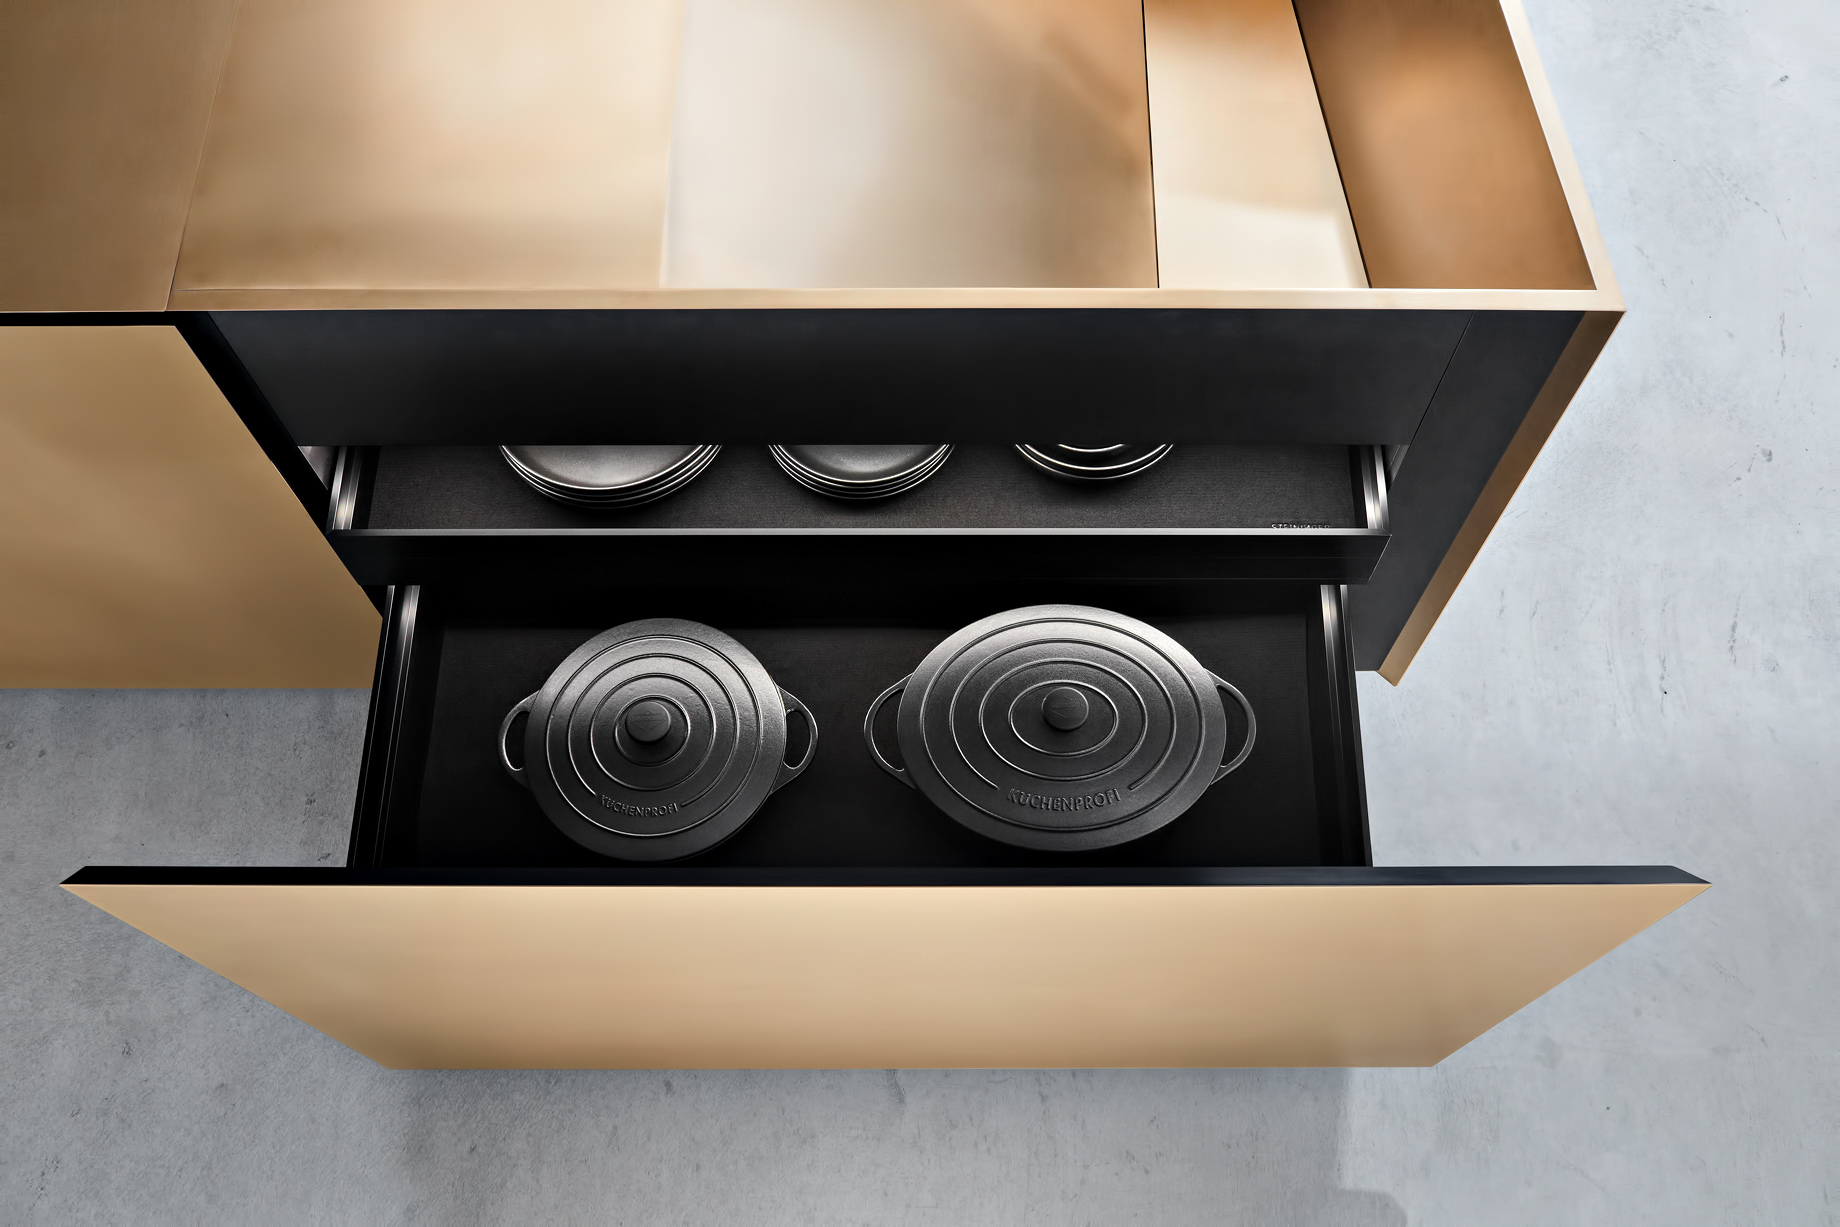 Iconic Steininger FOLD High Tech Kitchen Block Design Inspired by Origami – All drawers slides with indirect lighting